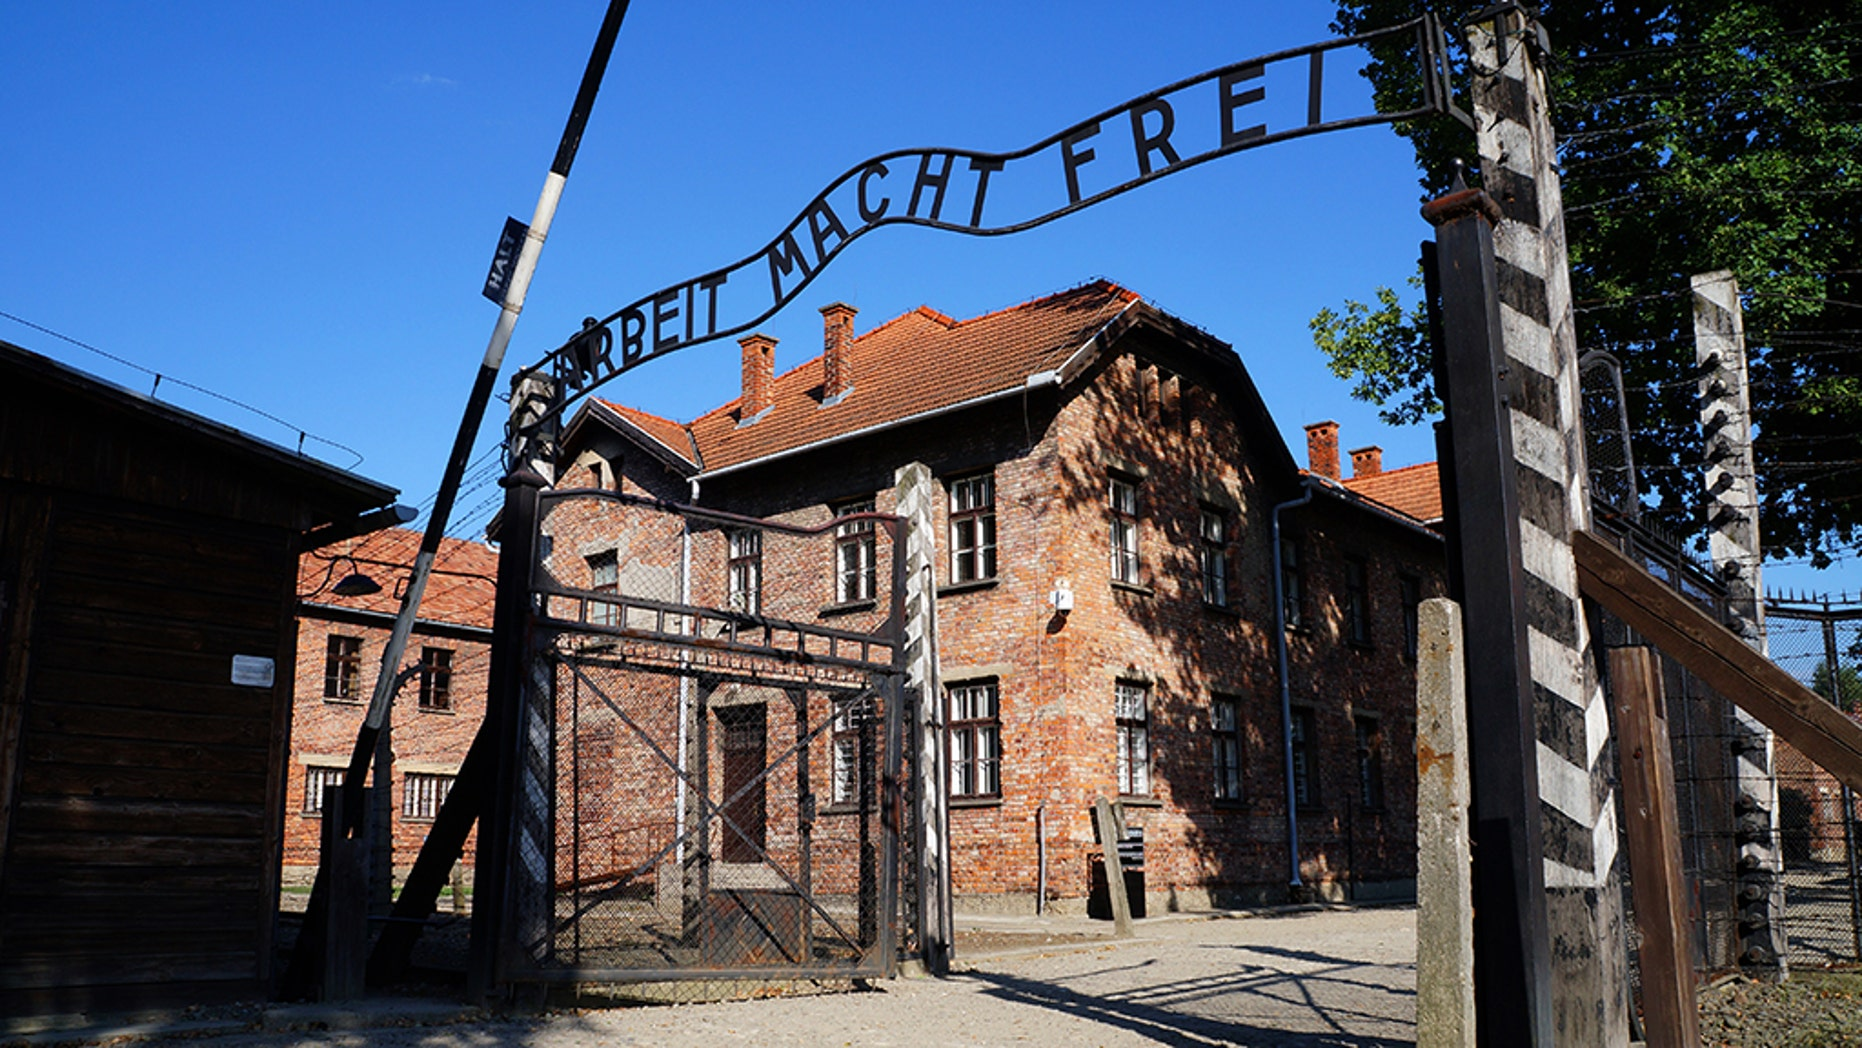 The remains of six Holocaust survivors - five adults and one child - found at Auschwitz Birkenau Concentration Camp, a former Nazi extermination camp in Oswiecim, Poland, will be interred at a Jewish cemetery in England.